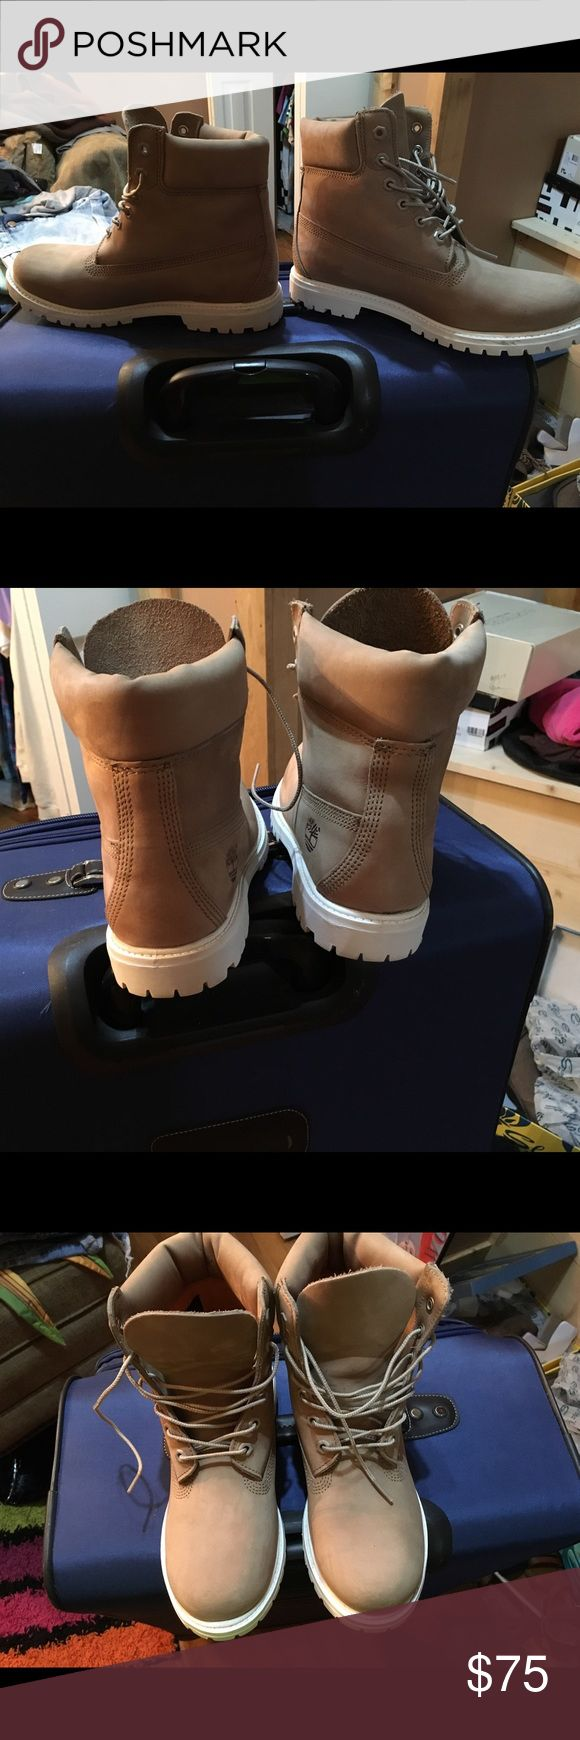 """Women's Timberland Premium Boot Women's Timberland 6"""" premium boot. Size 9. Bone/White in color. Classic support. Have been sprayed with water resistant spray so they will stay clean. Worn LESS than 5 times. Only selling because fit too snug with socks. Timberland Shoes Lace Up Boots"""